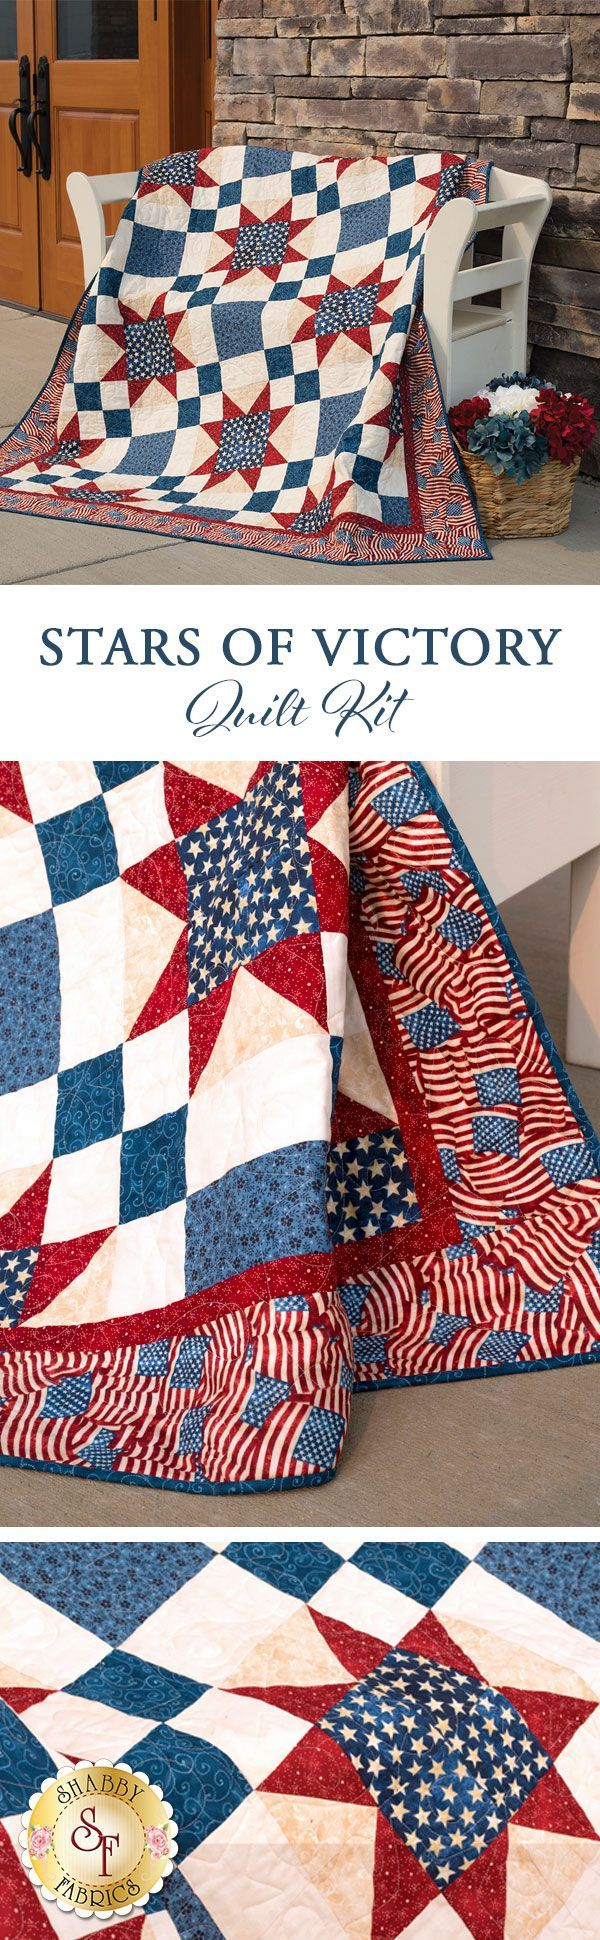 """Stars of Victory Quilt Add a stunning americana touch to your home with this striking quilt, or better yet create a beautiful tribute to honor a service member with this wonderful, patriotic keepsake. This Shabby Exclusive quilt is made using simple piecing, and features a beautiful American flag border. Finished size measures approximately 59½"""" x 71½"""" and meets the Standards of Excellence for the Quilts of Valor Foundation®️️ to be an official Quilt of Valor®️️."""